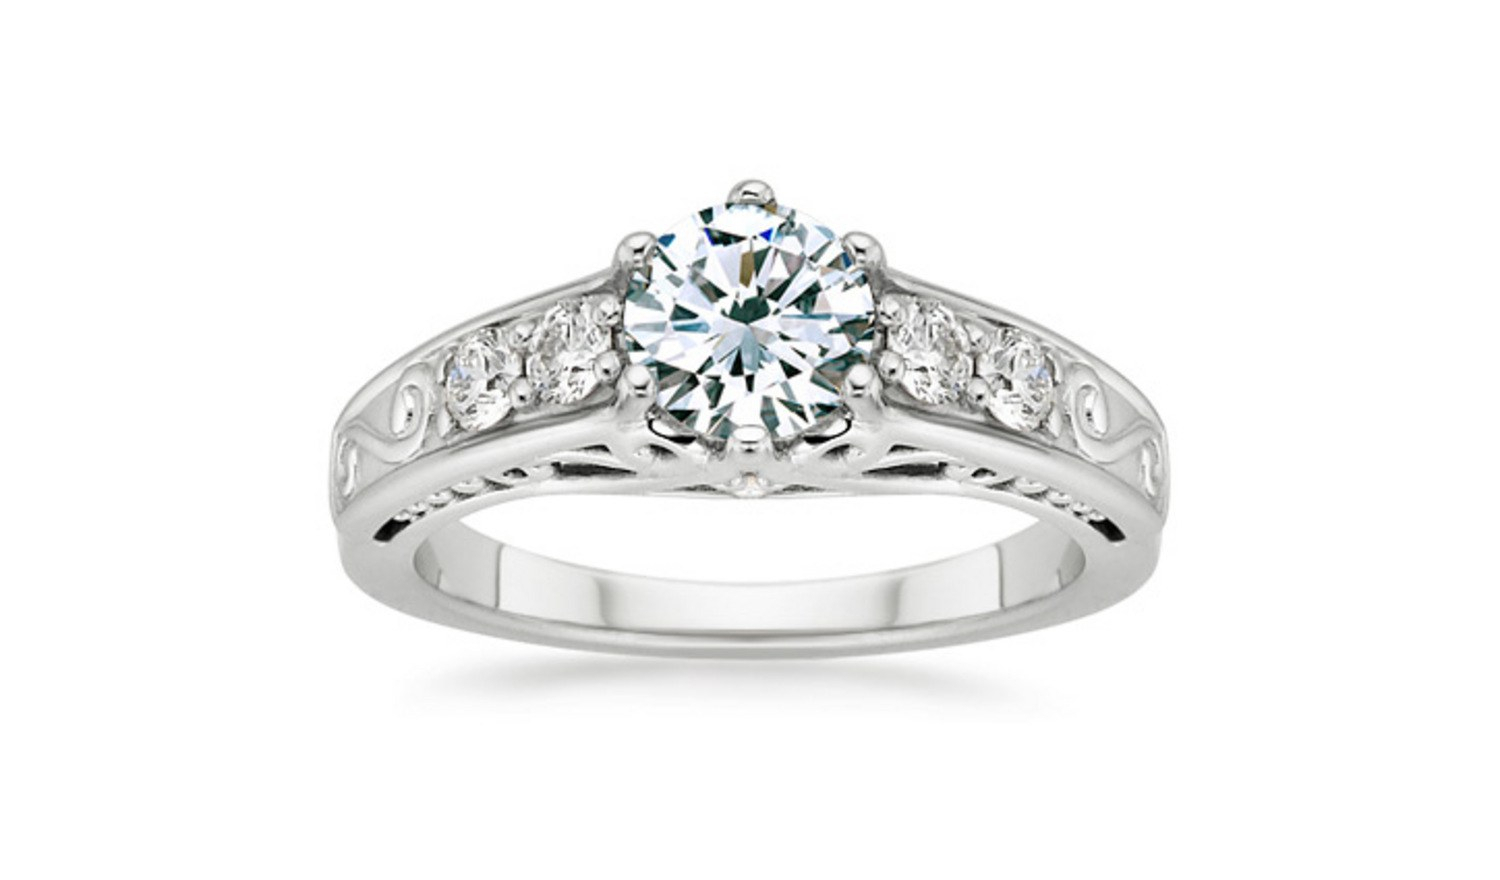 62 Diamond Engagement Rings Under $5,000 | Glamour Inside Most Up To Date Diamond Five Stone Bar Set Anniversary Bands In White Gold (View 11 of 25)